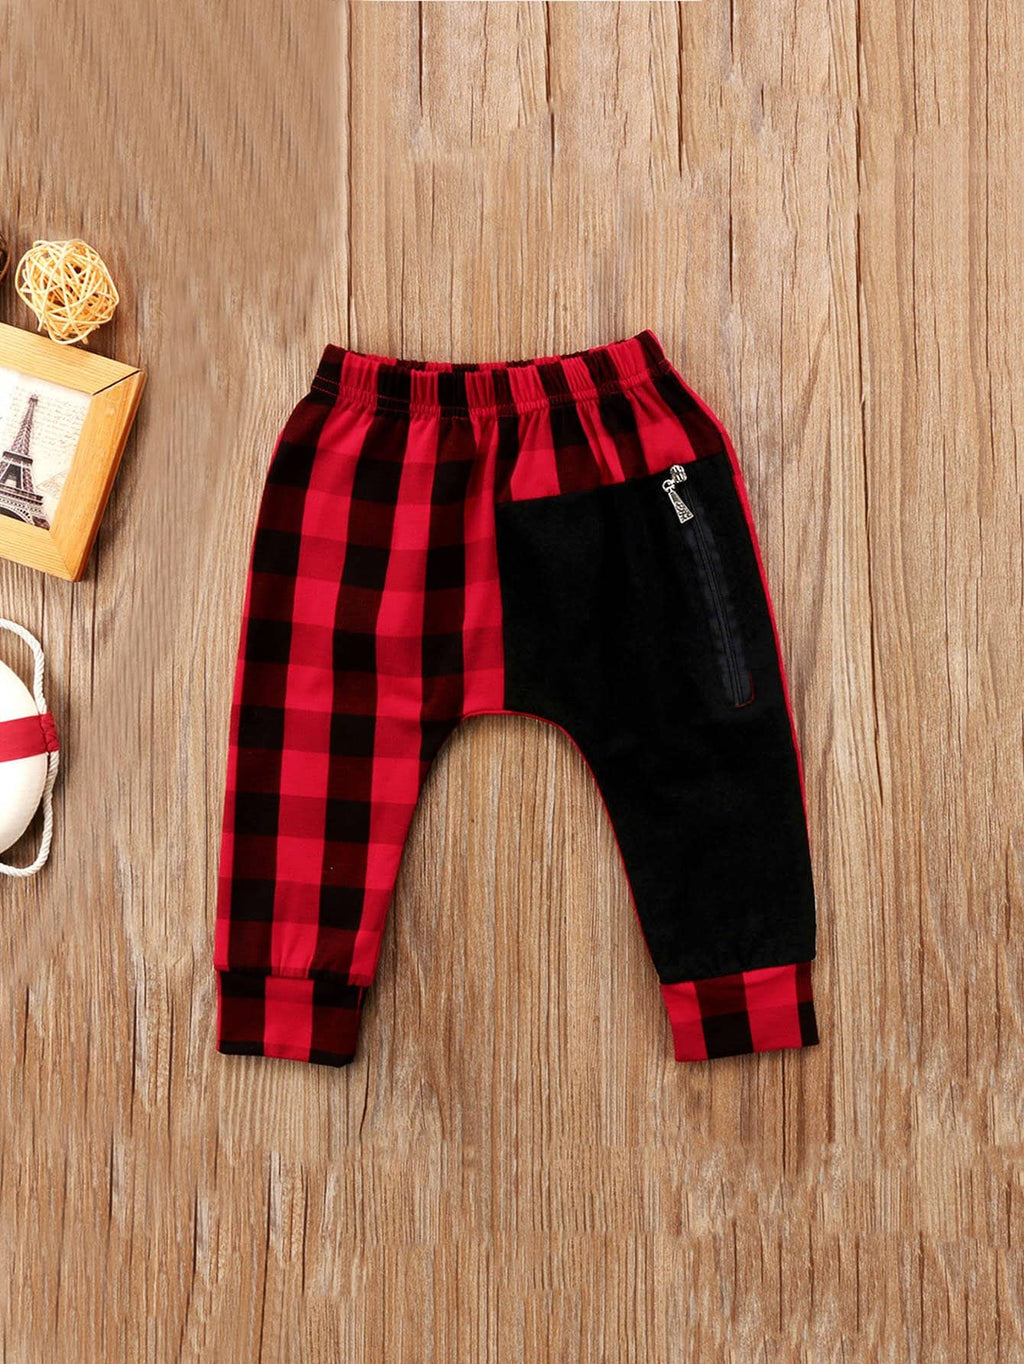 Toddler Boy Pants - Zipper Detail Gingham Pants